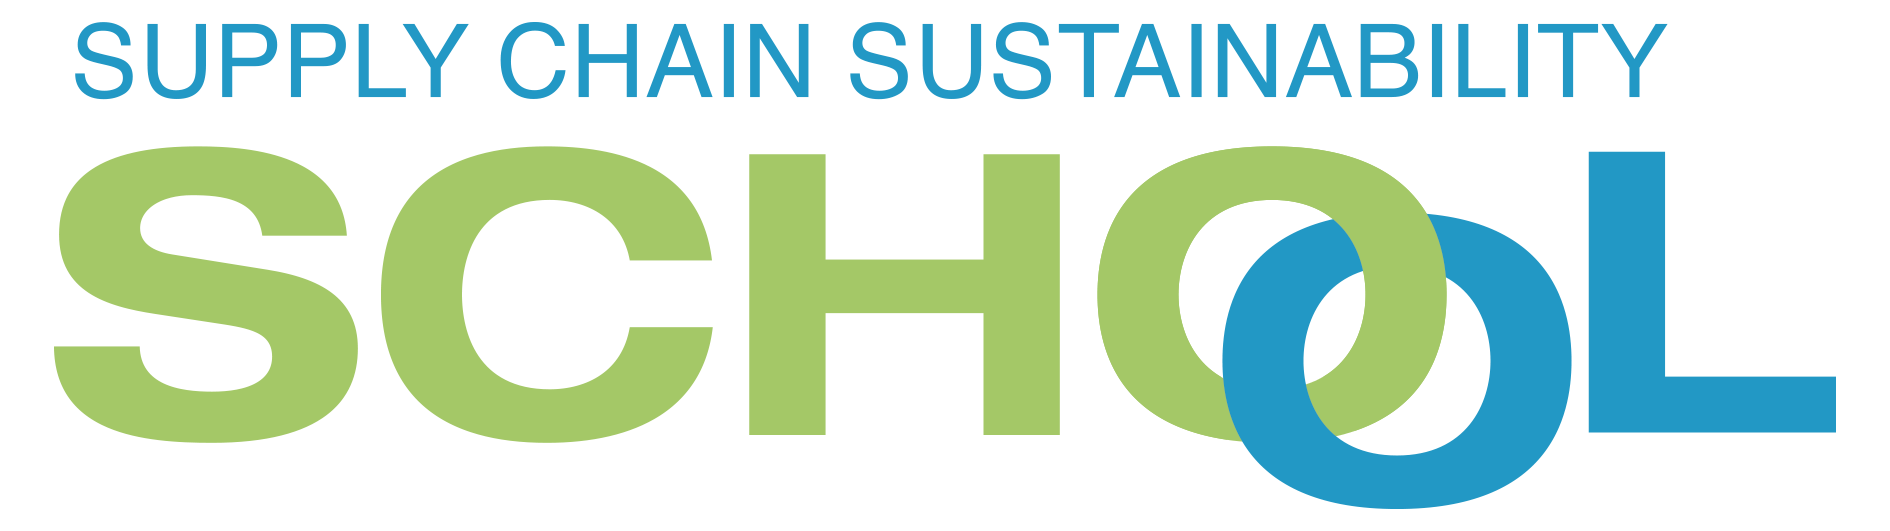 SUPPLY-CHAIN-SUSTAINABILITY-SCHOOL